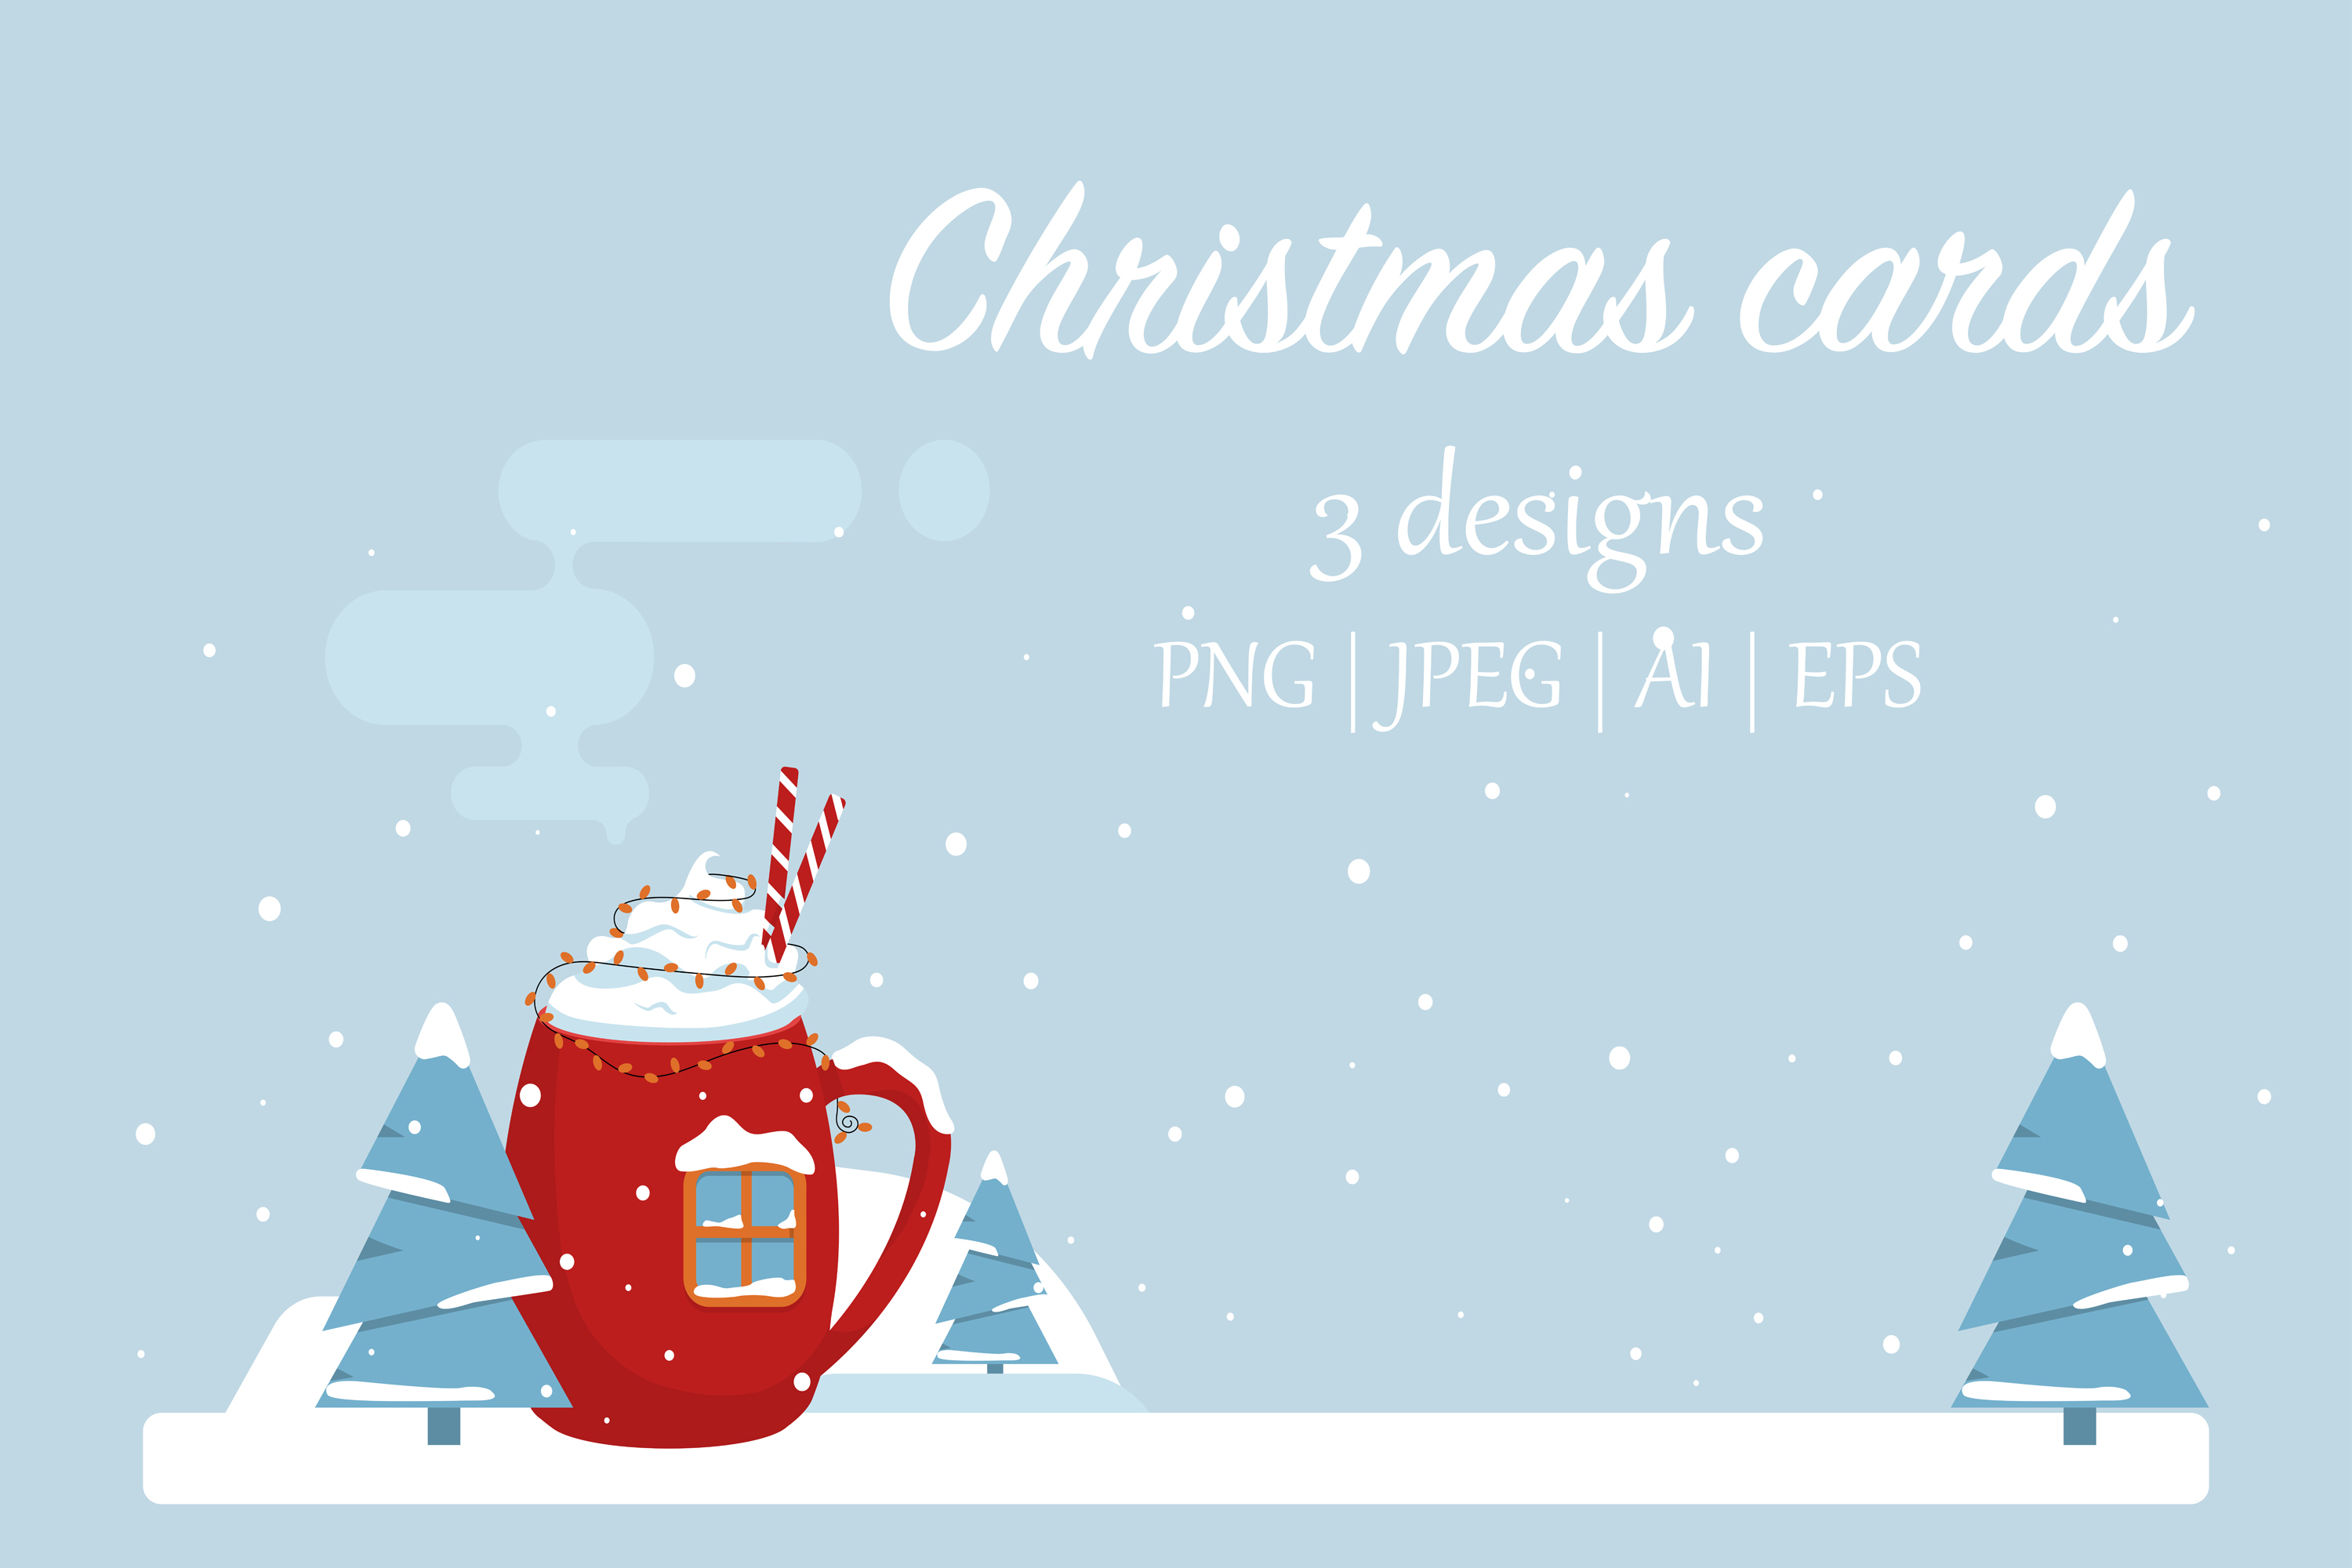 Christmas greetings cards example image 1